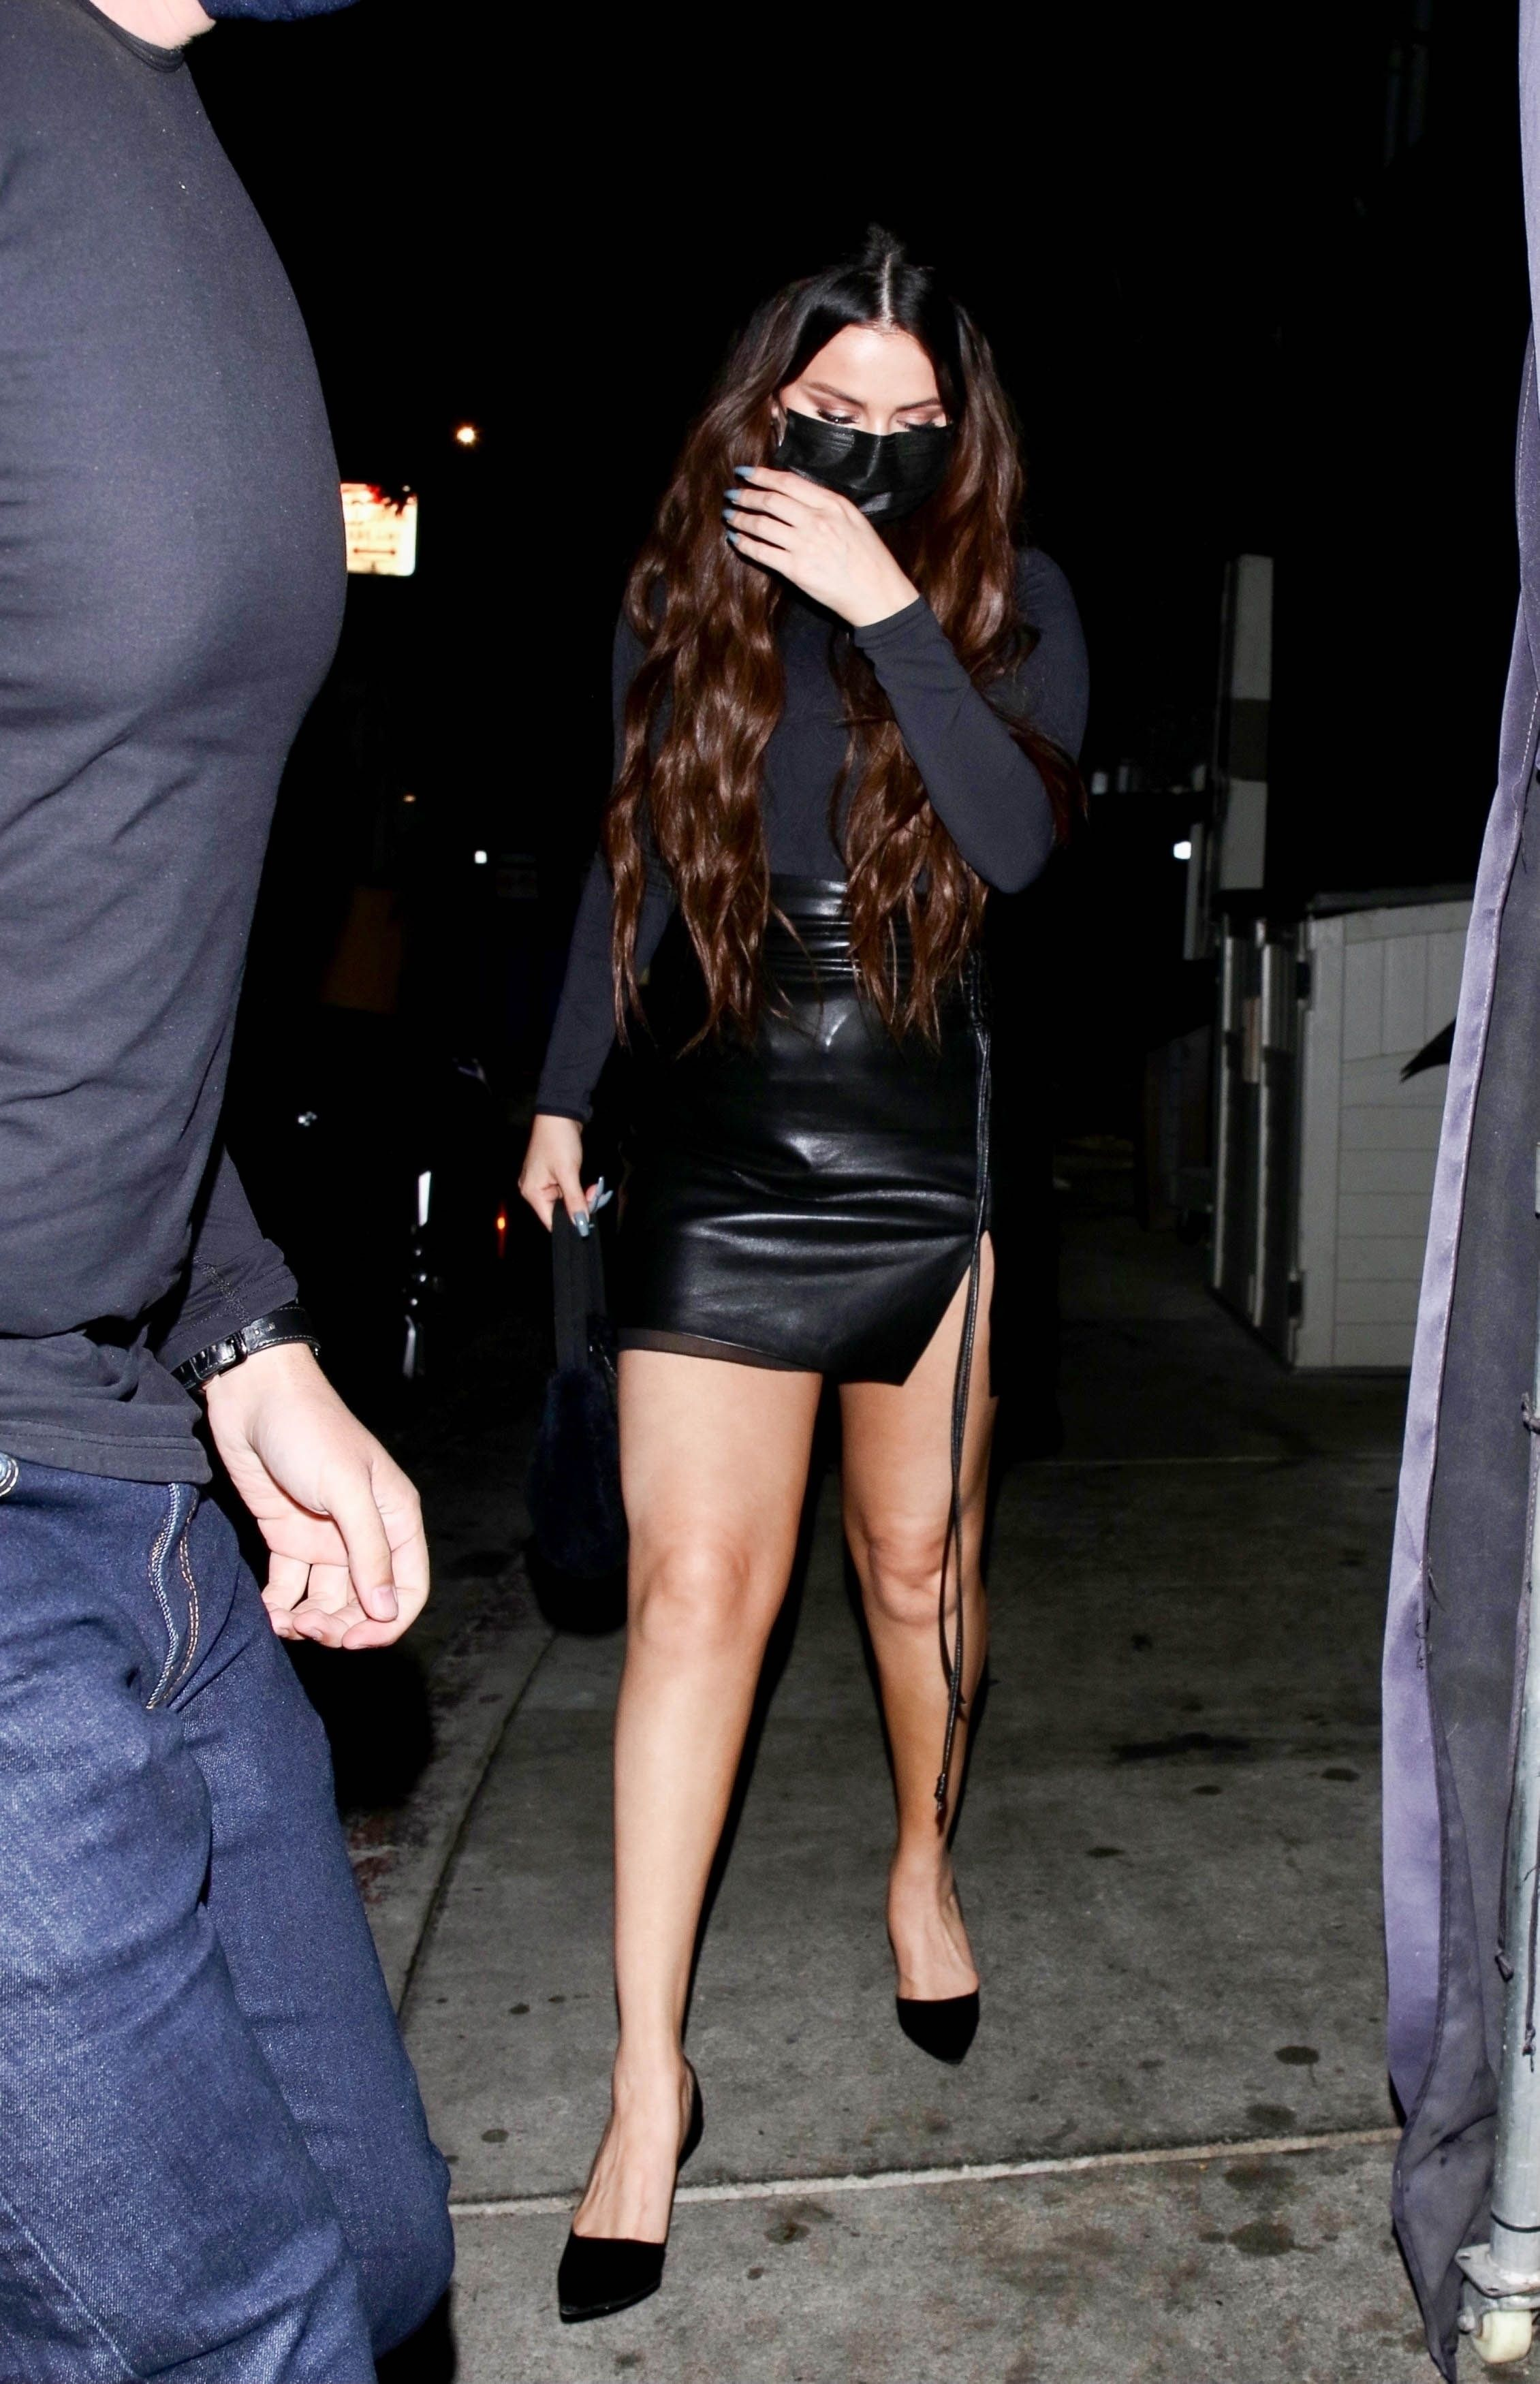 Selena Gomez Went Out in a Leather Mini Skirt With a Leg Slit